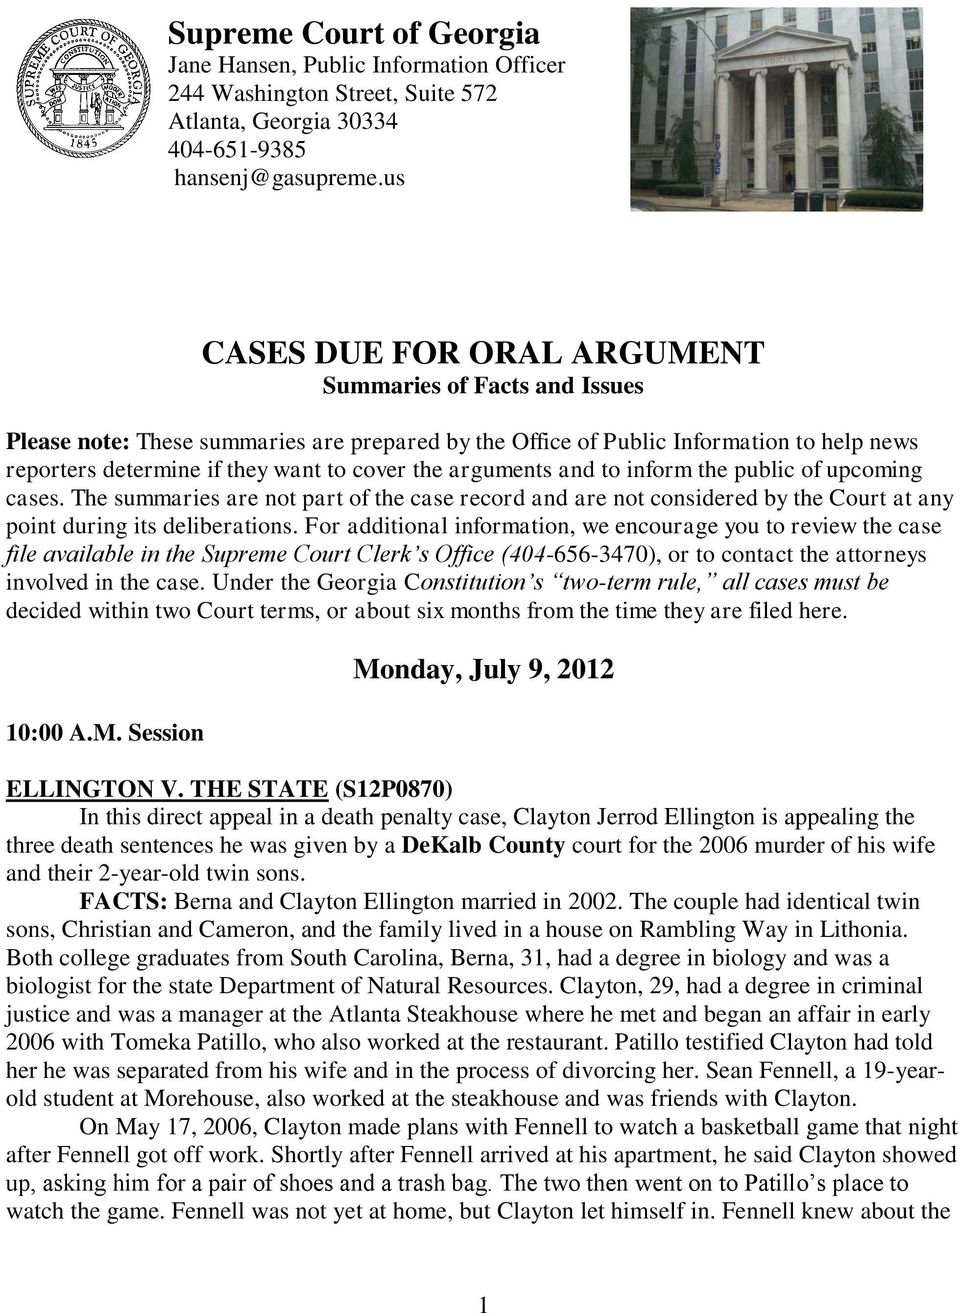 arguments and to inform the public of upcoming cases. The summaries are not part of the case record and are not considered by the Court at any point during its deliberations.